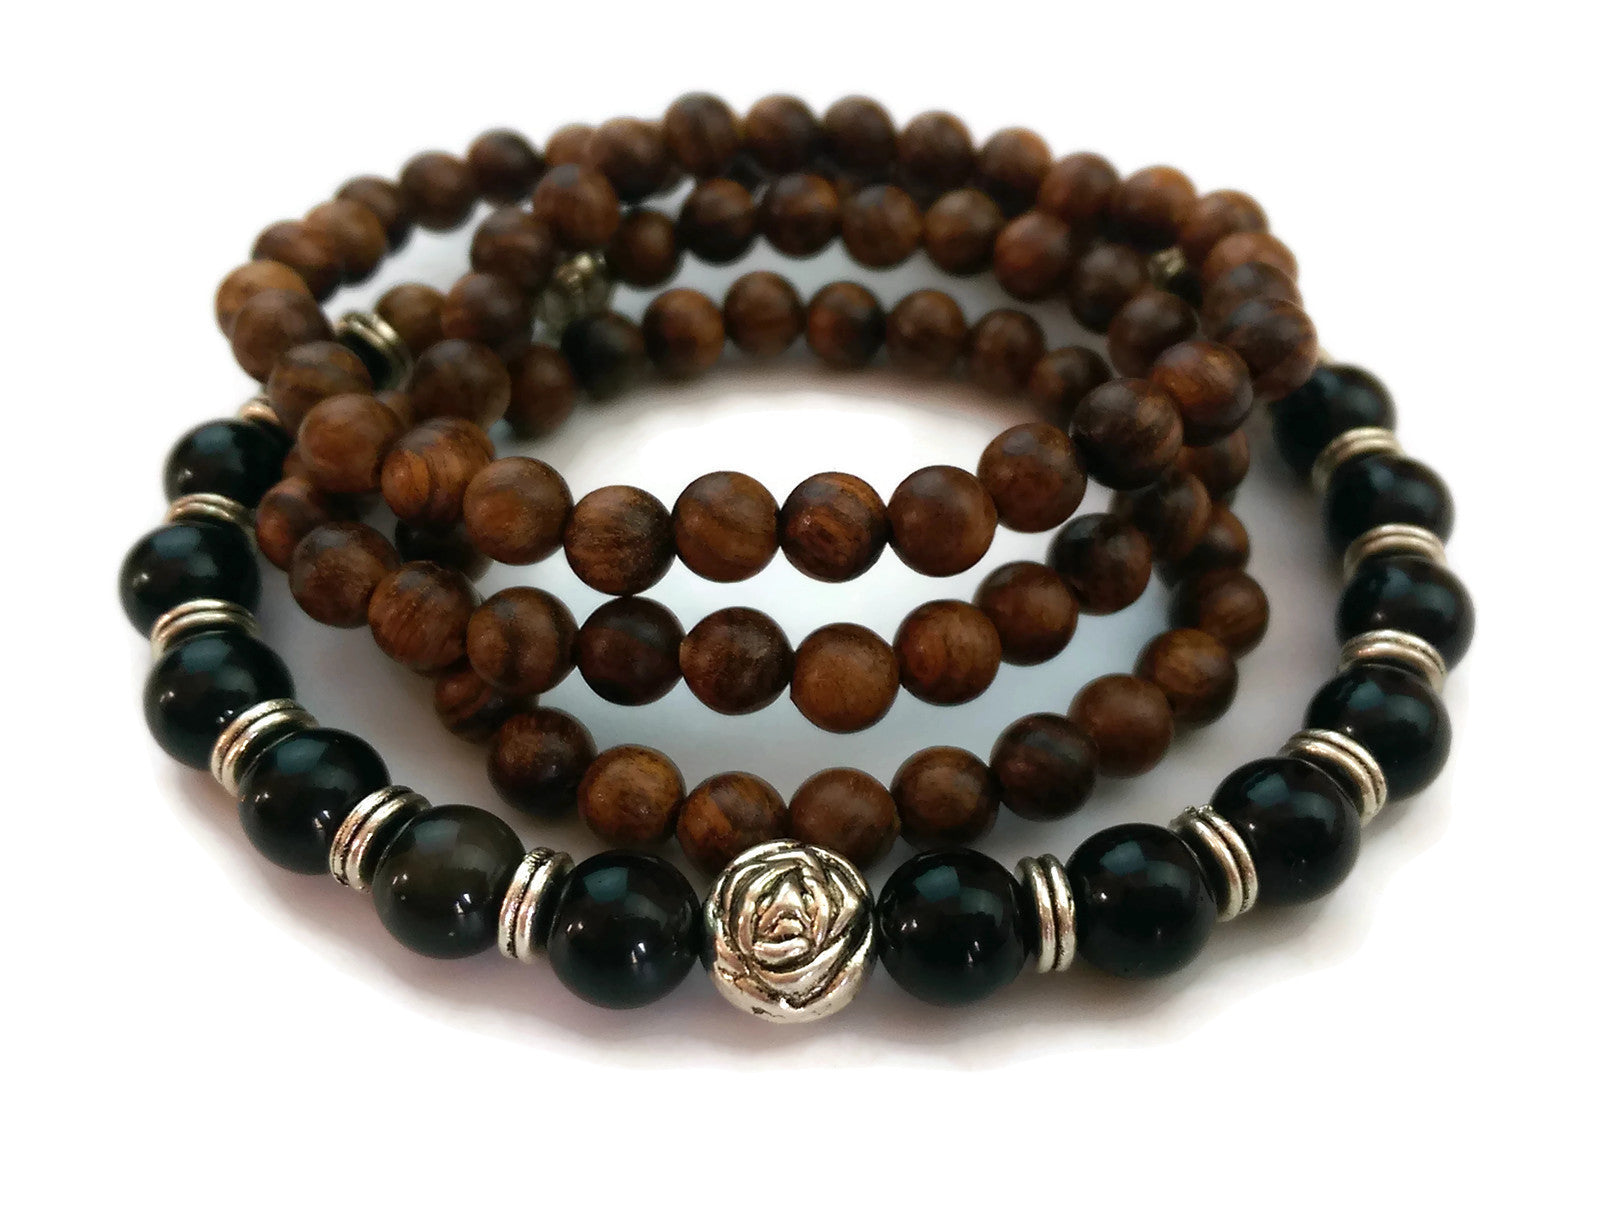 6mm Black Pear Wood and 8mm Obsidian Stone Wrist Wrap Mala Bracelet with Silver Lotus